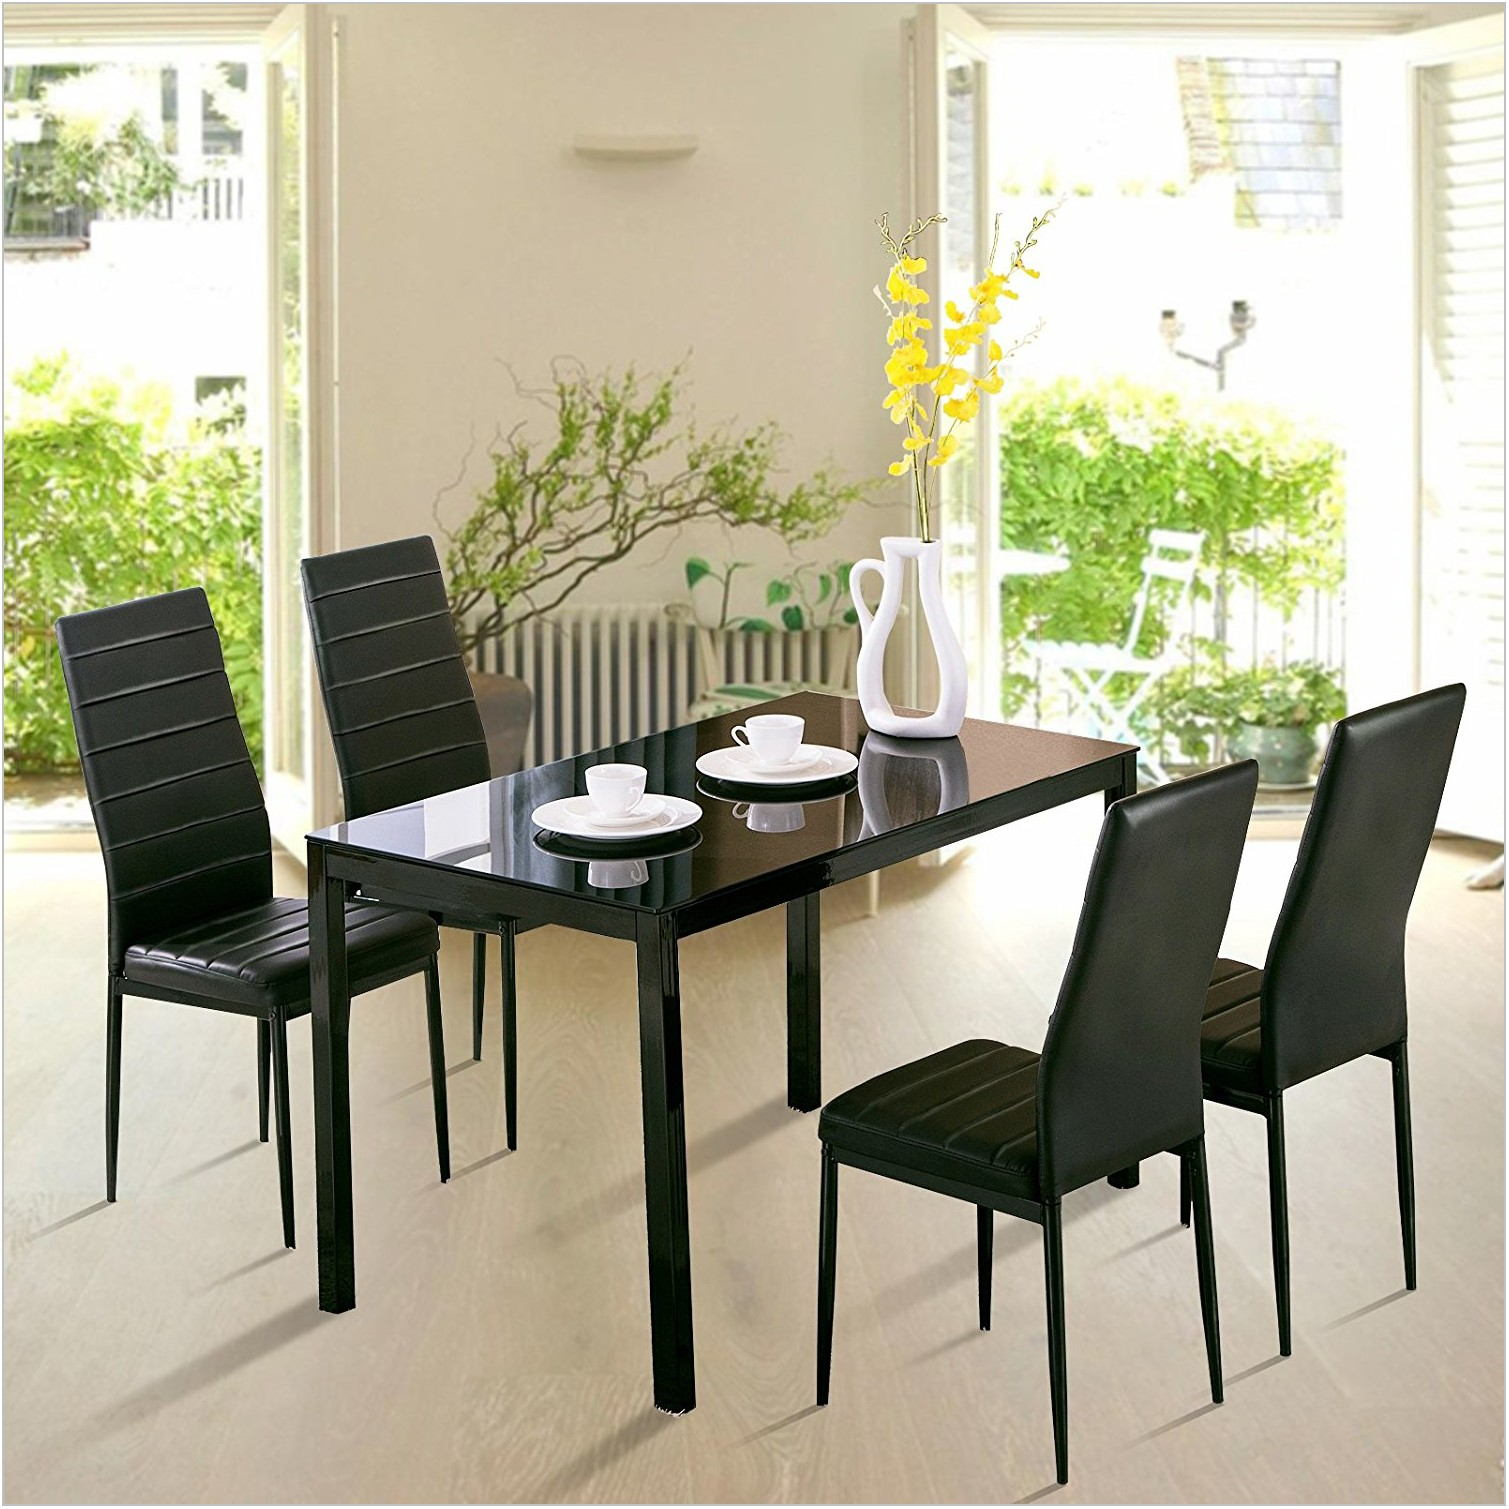 4 Piece Dining Room Table Sets